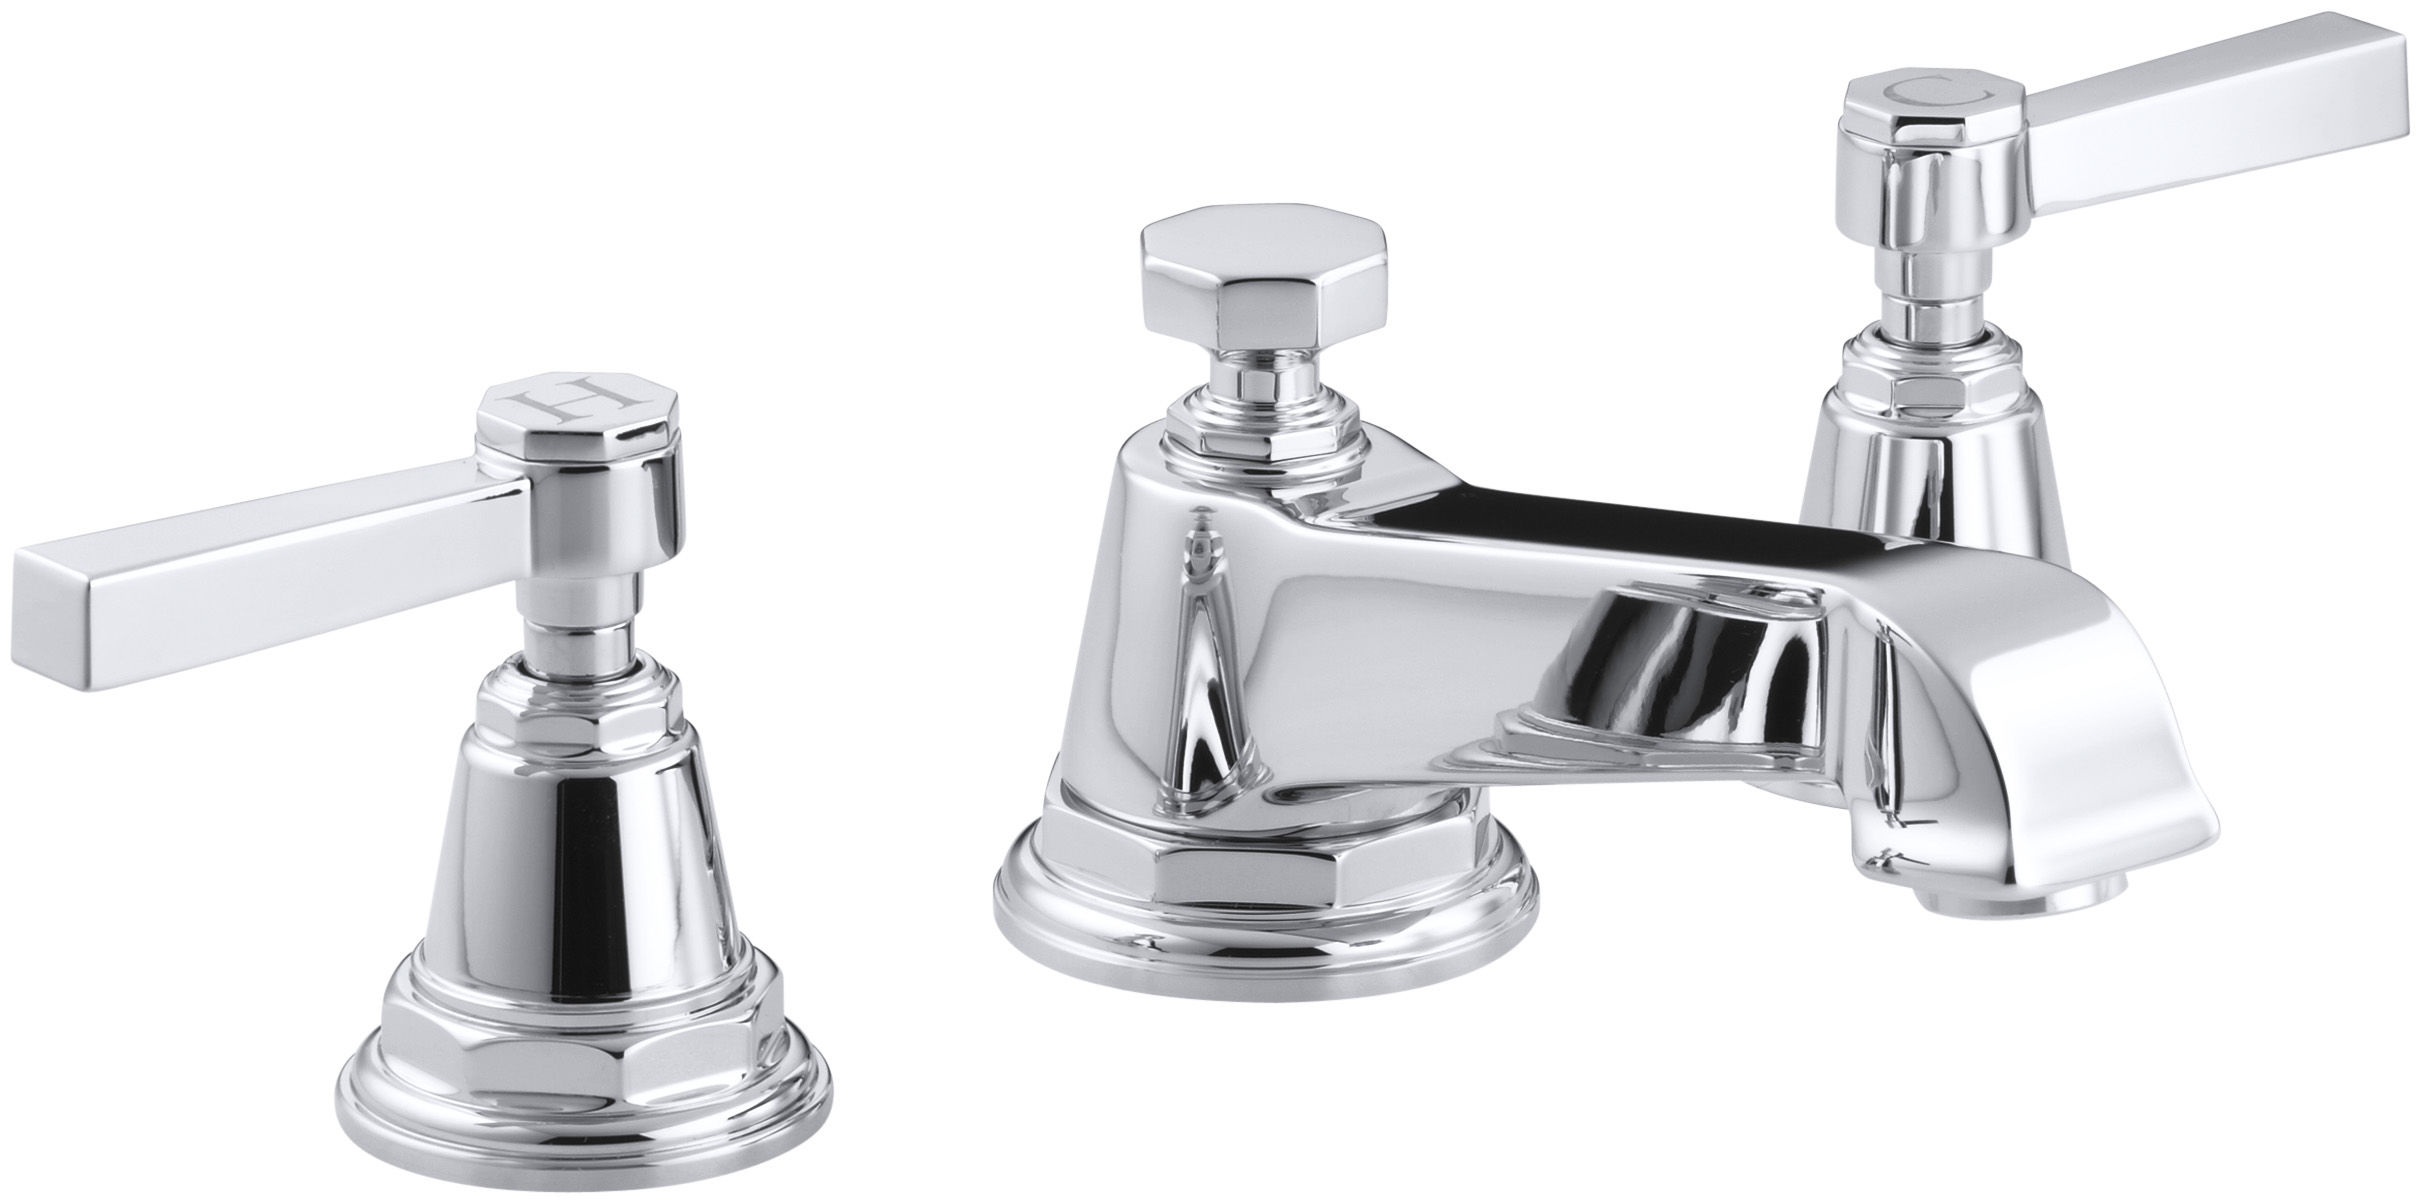 spot bathroom polished shower faucet drain included heads nickel com watersense brushed faucets moen boardwalk sink handle widespread pl resist at lowes shop